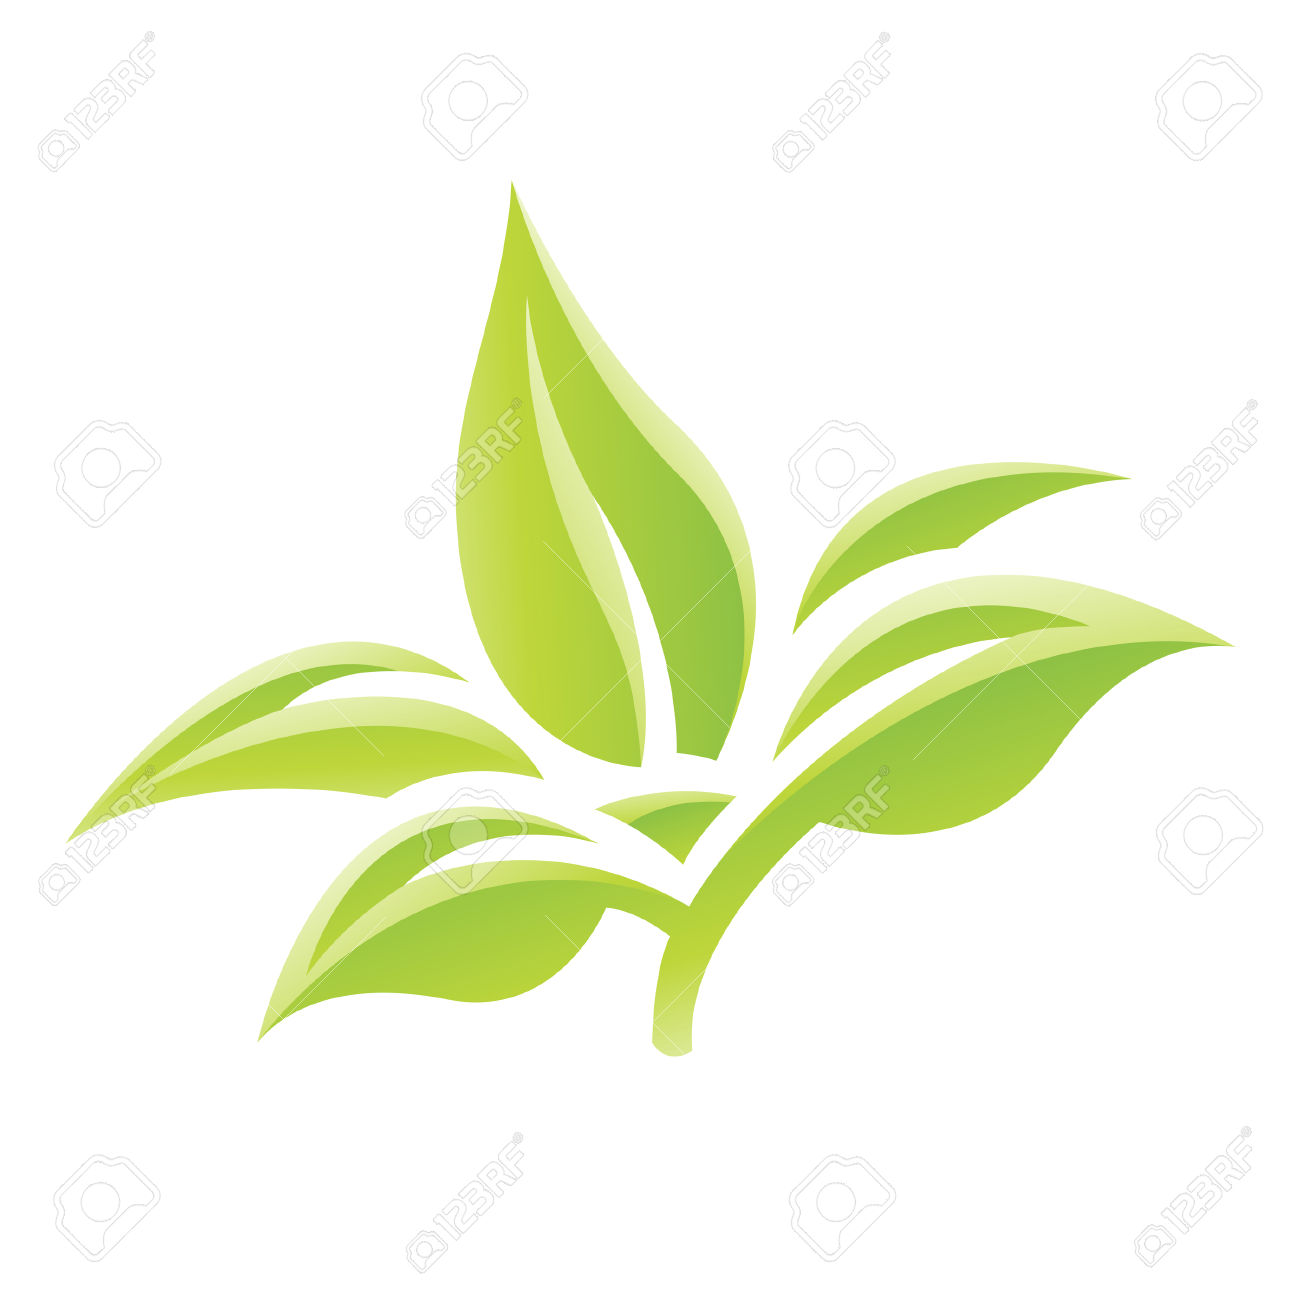 Illustration Of Green Glossy Leaves Icon Isolated On A White.